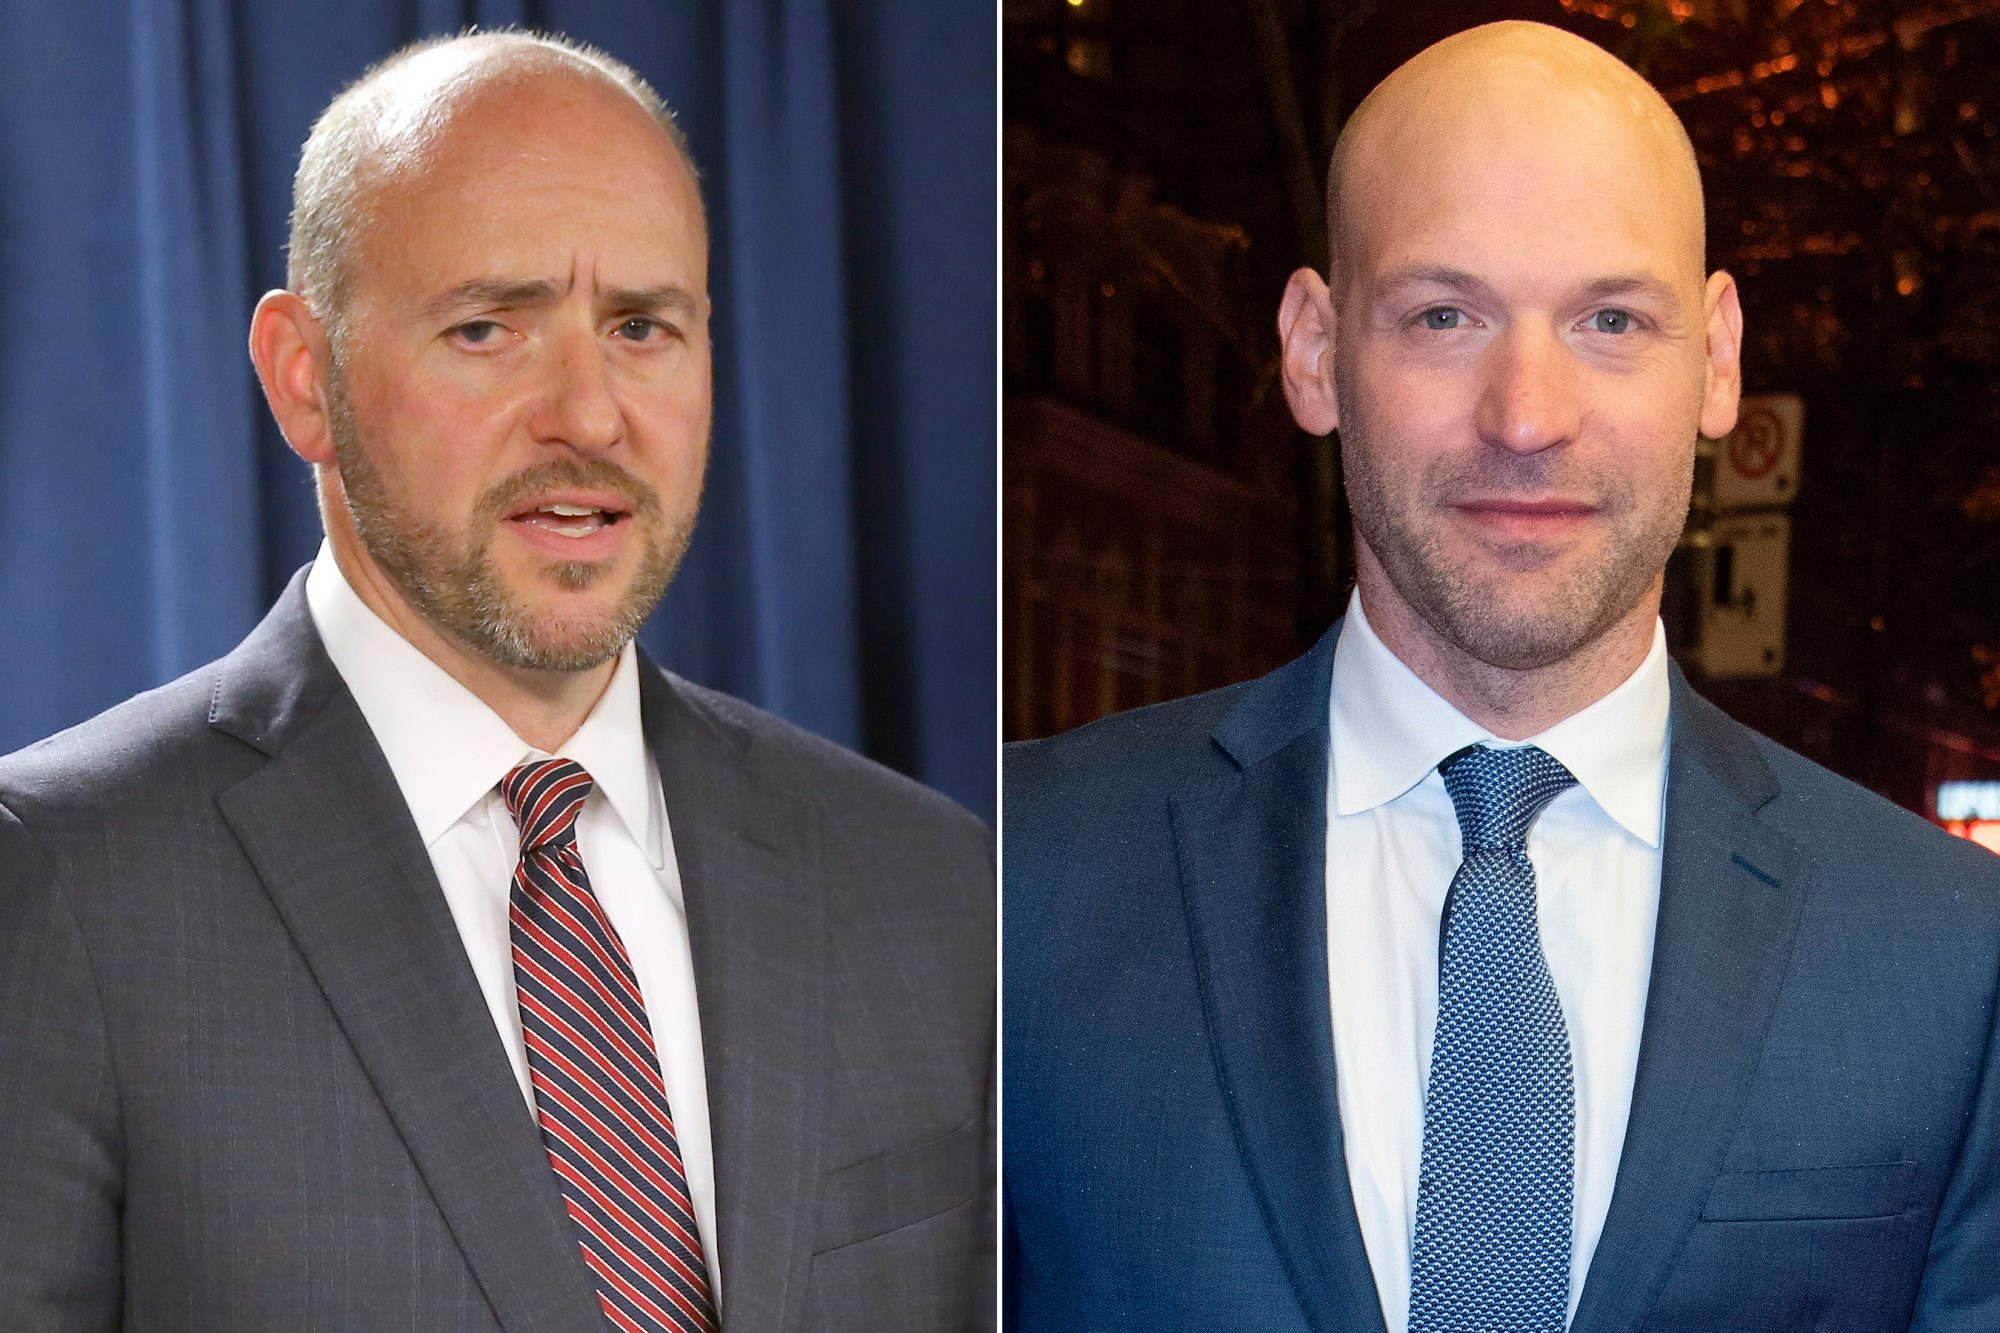 U.S. Attorney Andrew E. Lessig -- Corey Stoll